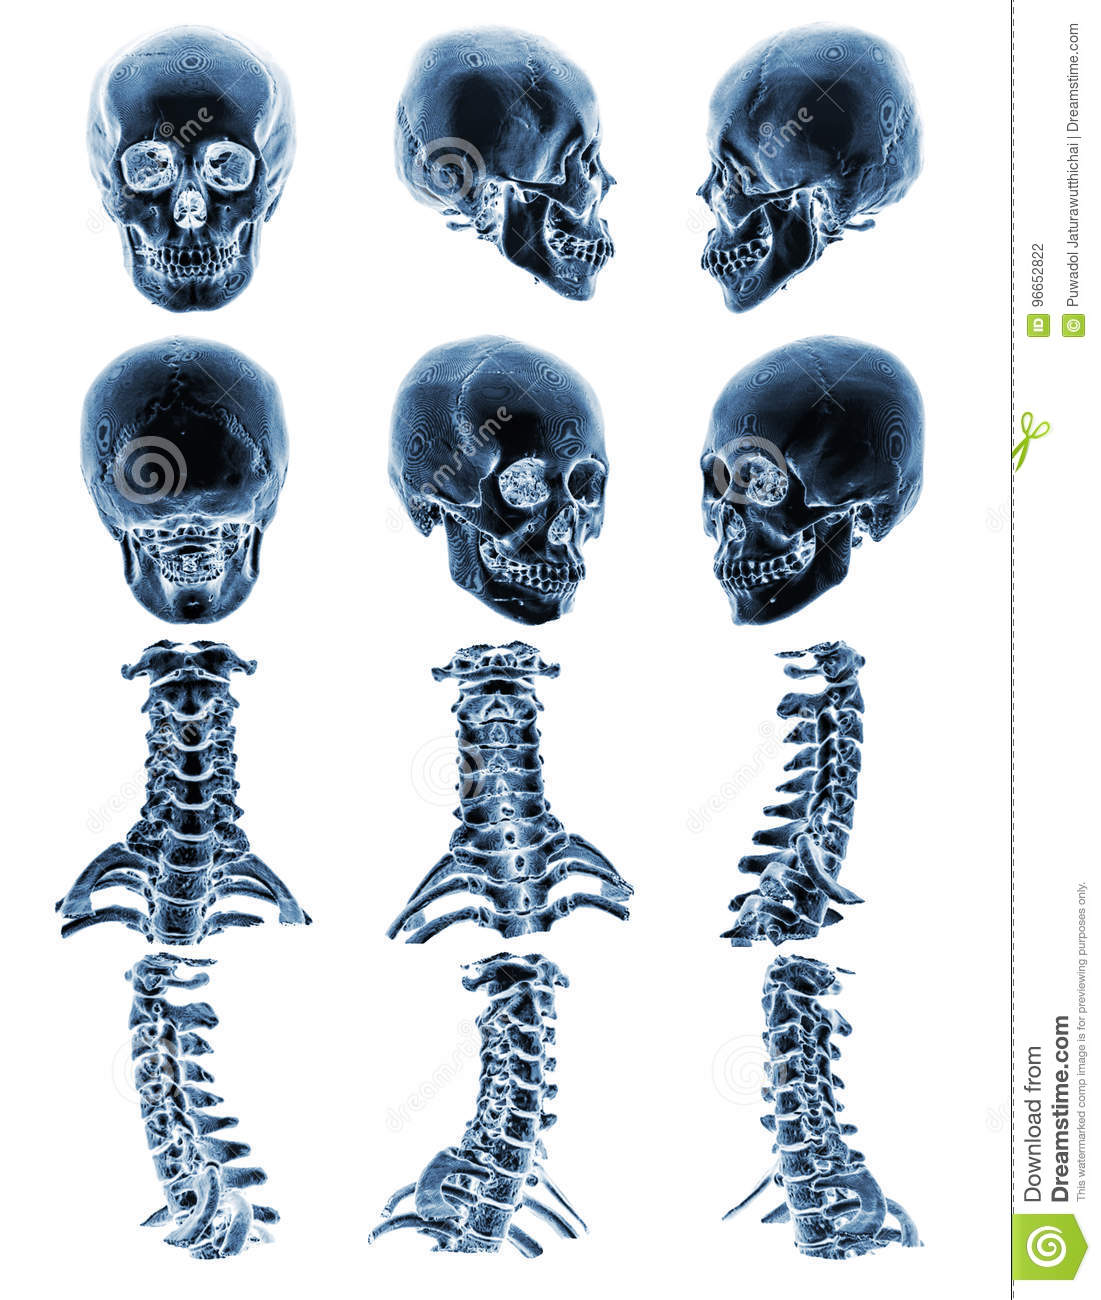 CT scan & x28; Computed tomography & x29; with 3D graphic show normal human skull and cervical spine